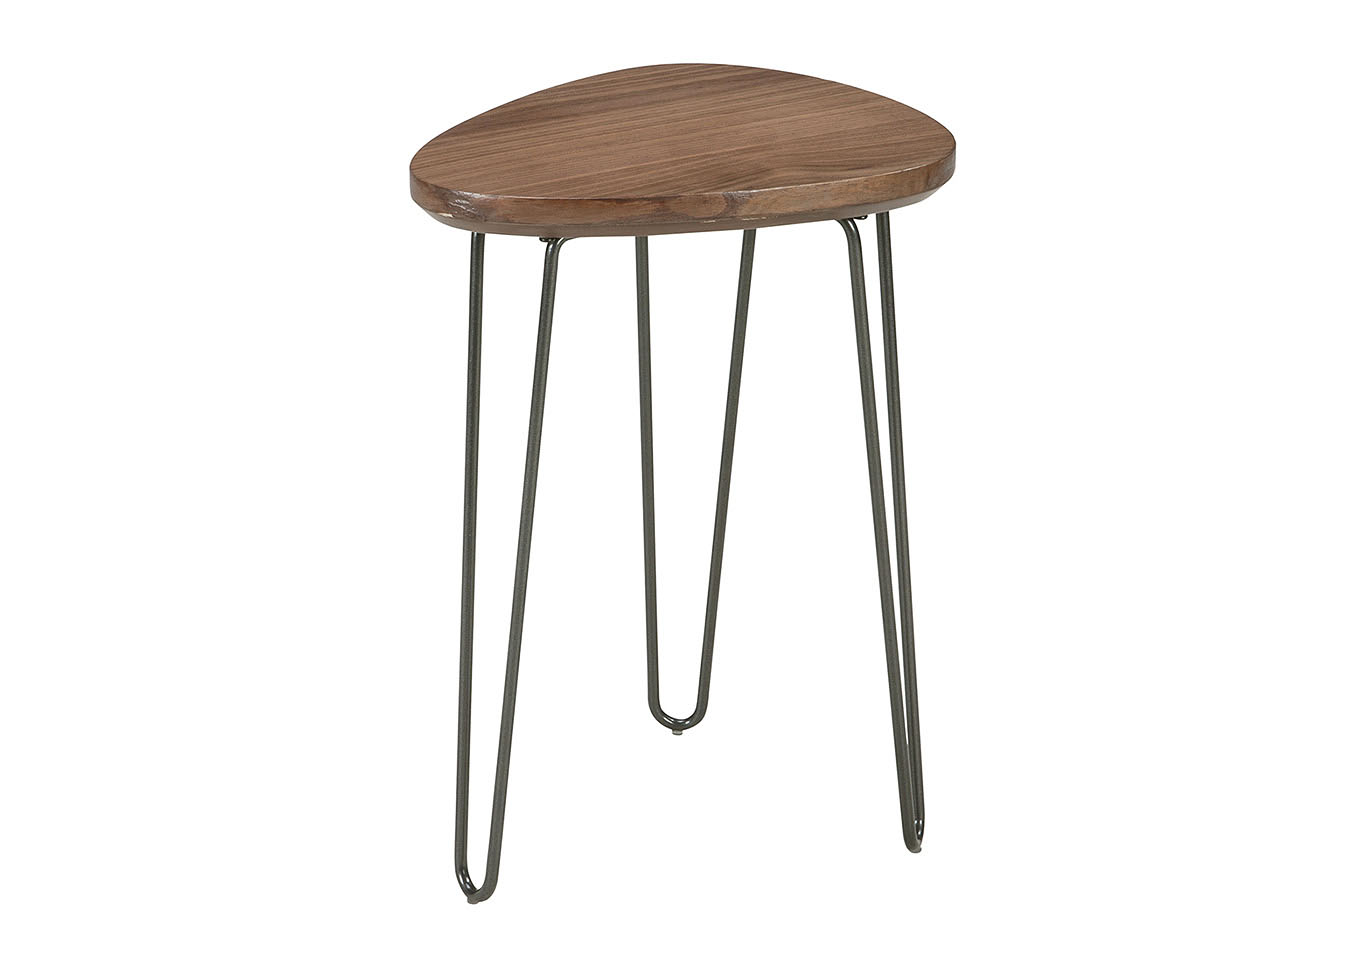 Taft Furniture Sleep Center Courager BrownBlack Triangle - Black triangle end table